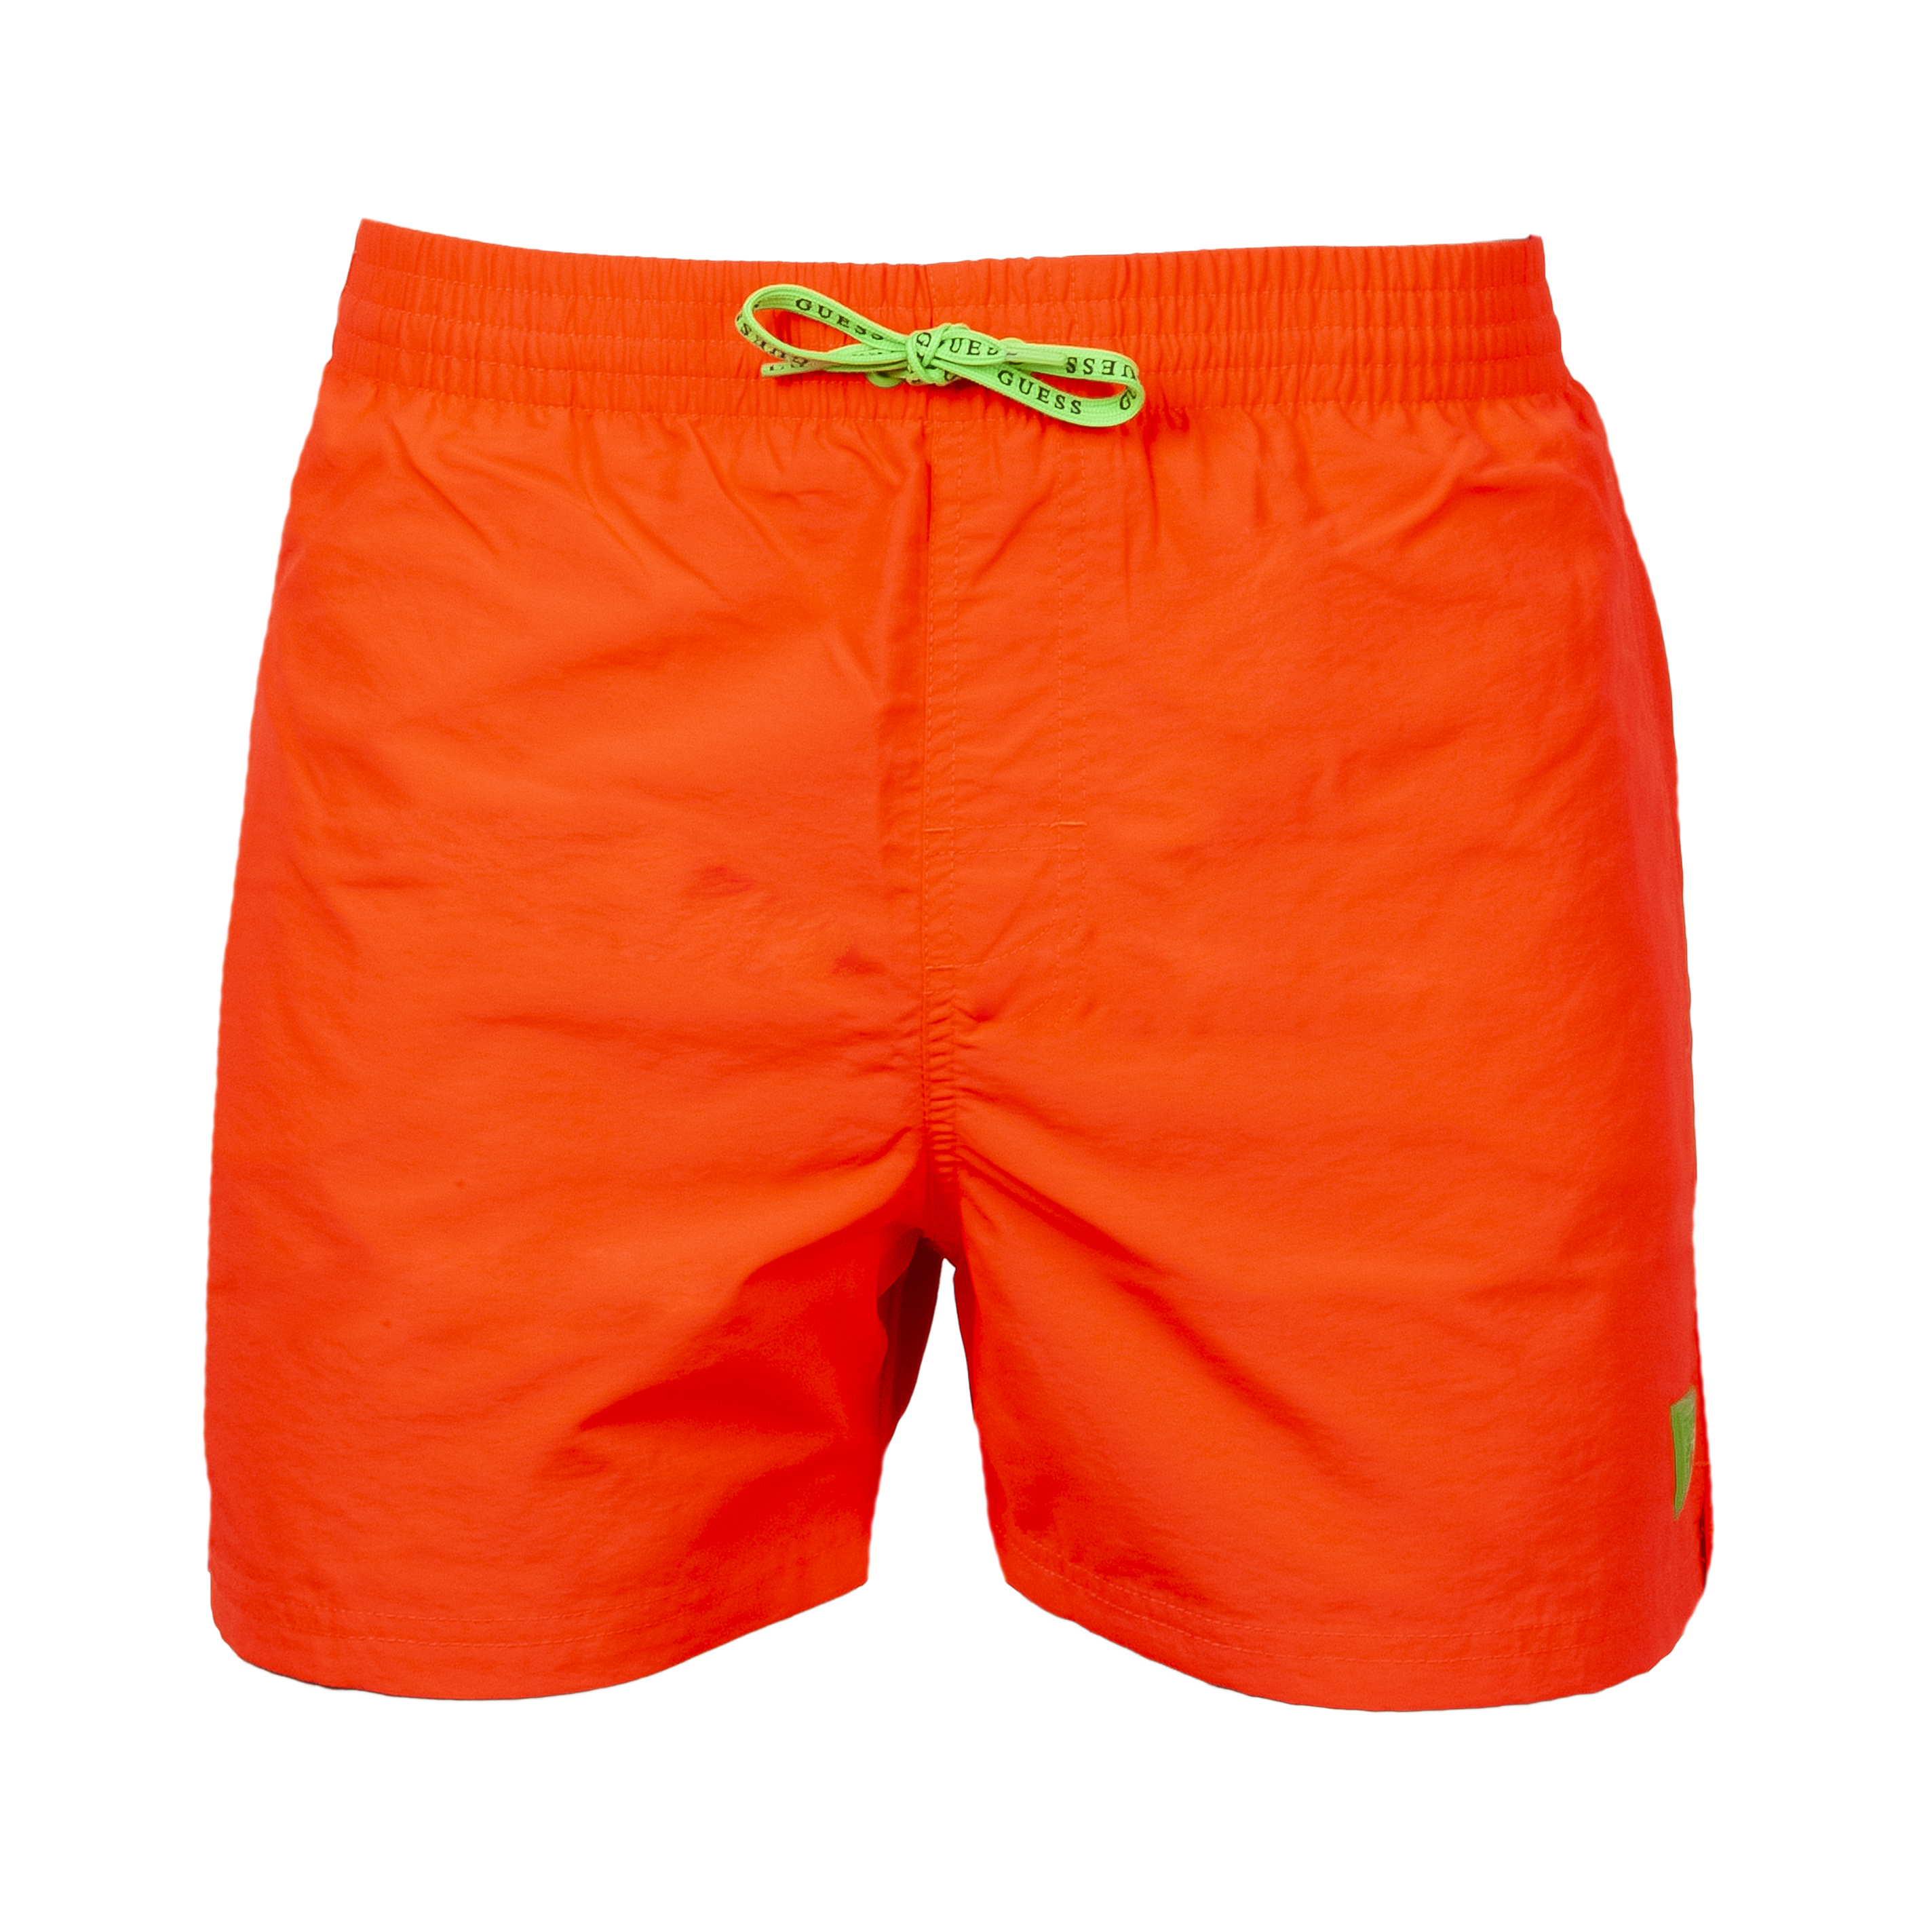 Short de bain guess woven orange fluo à logo vert